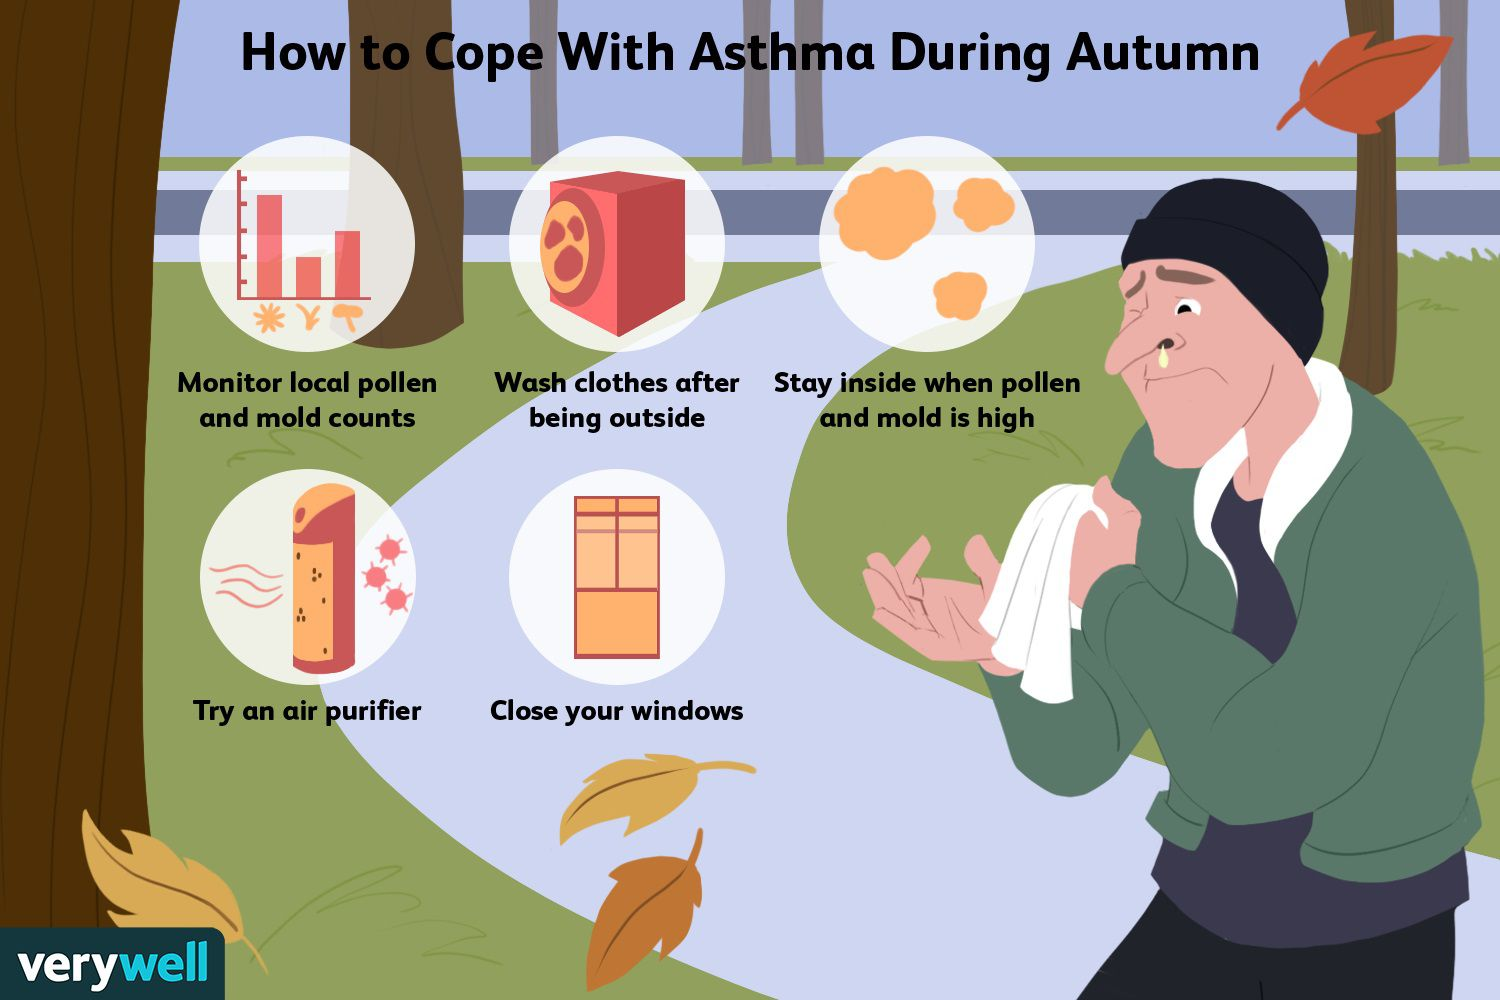 How to Cope With Asthma During Autumn